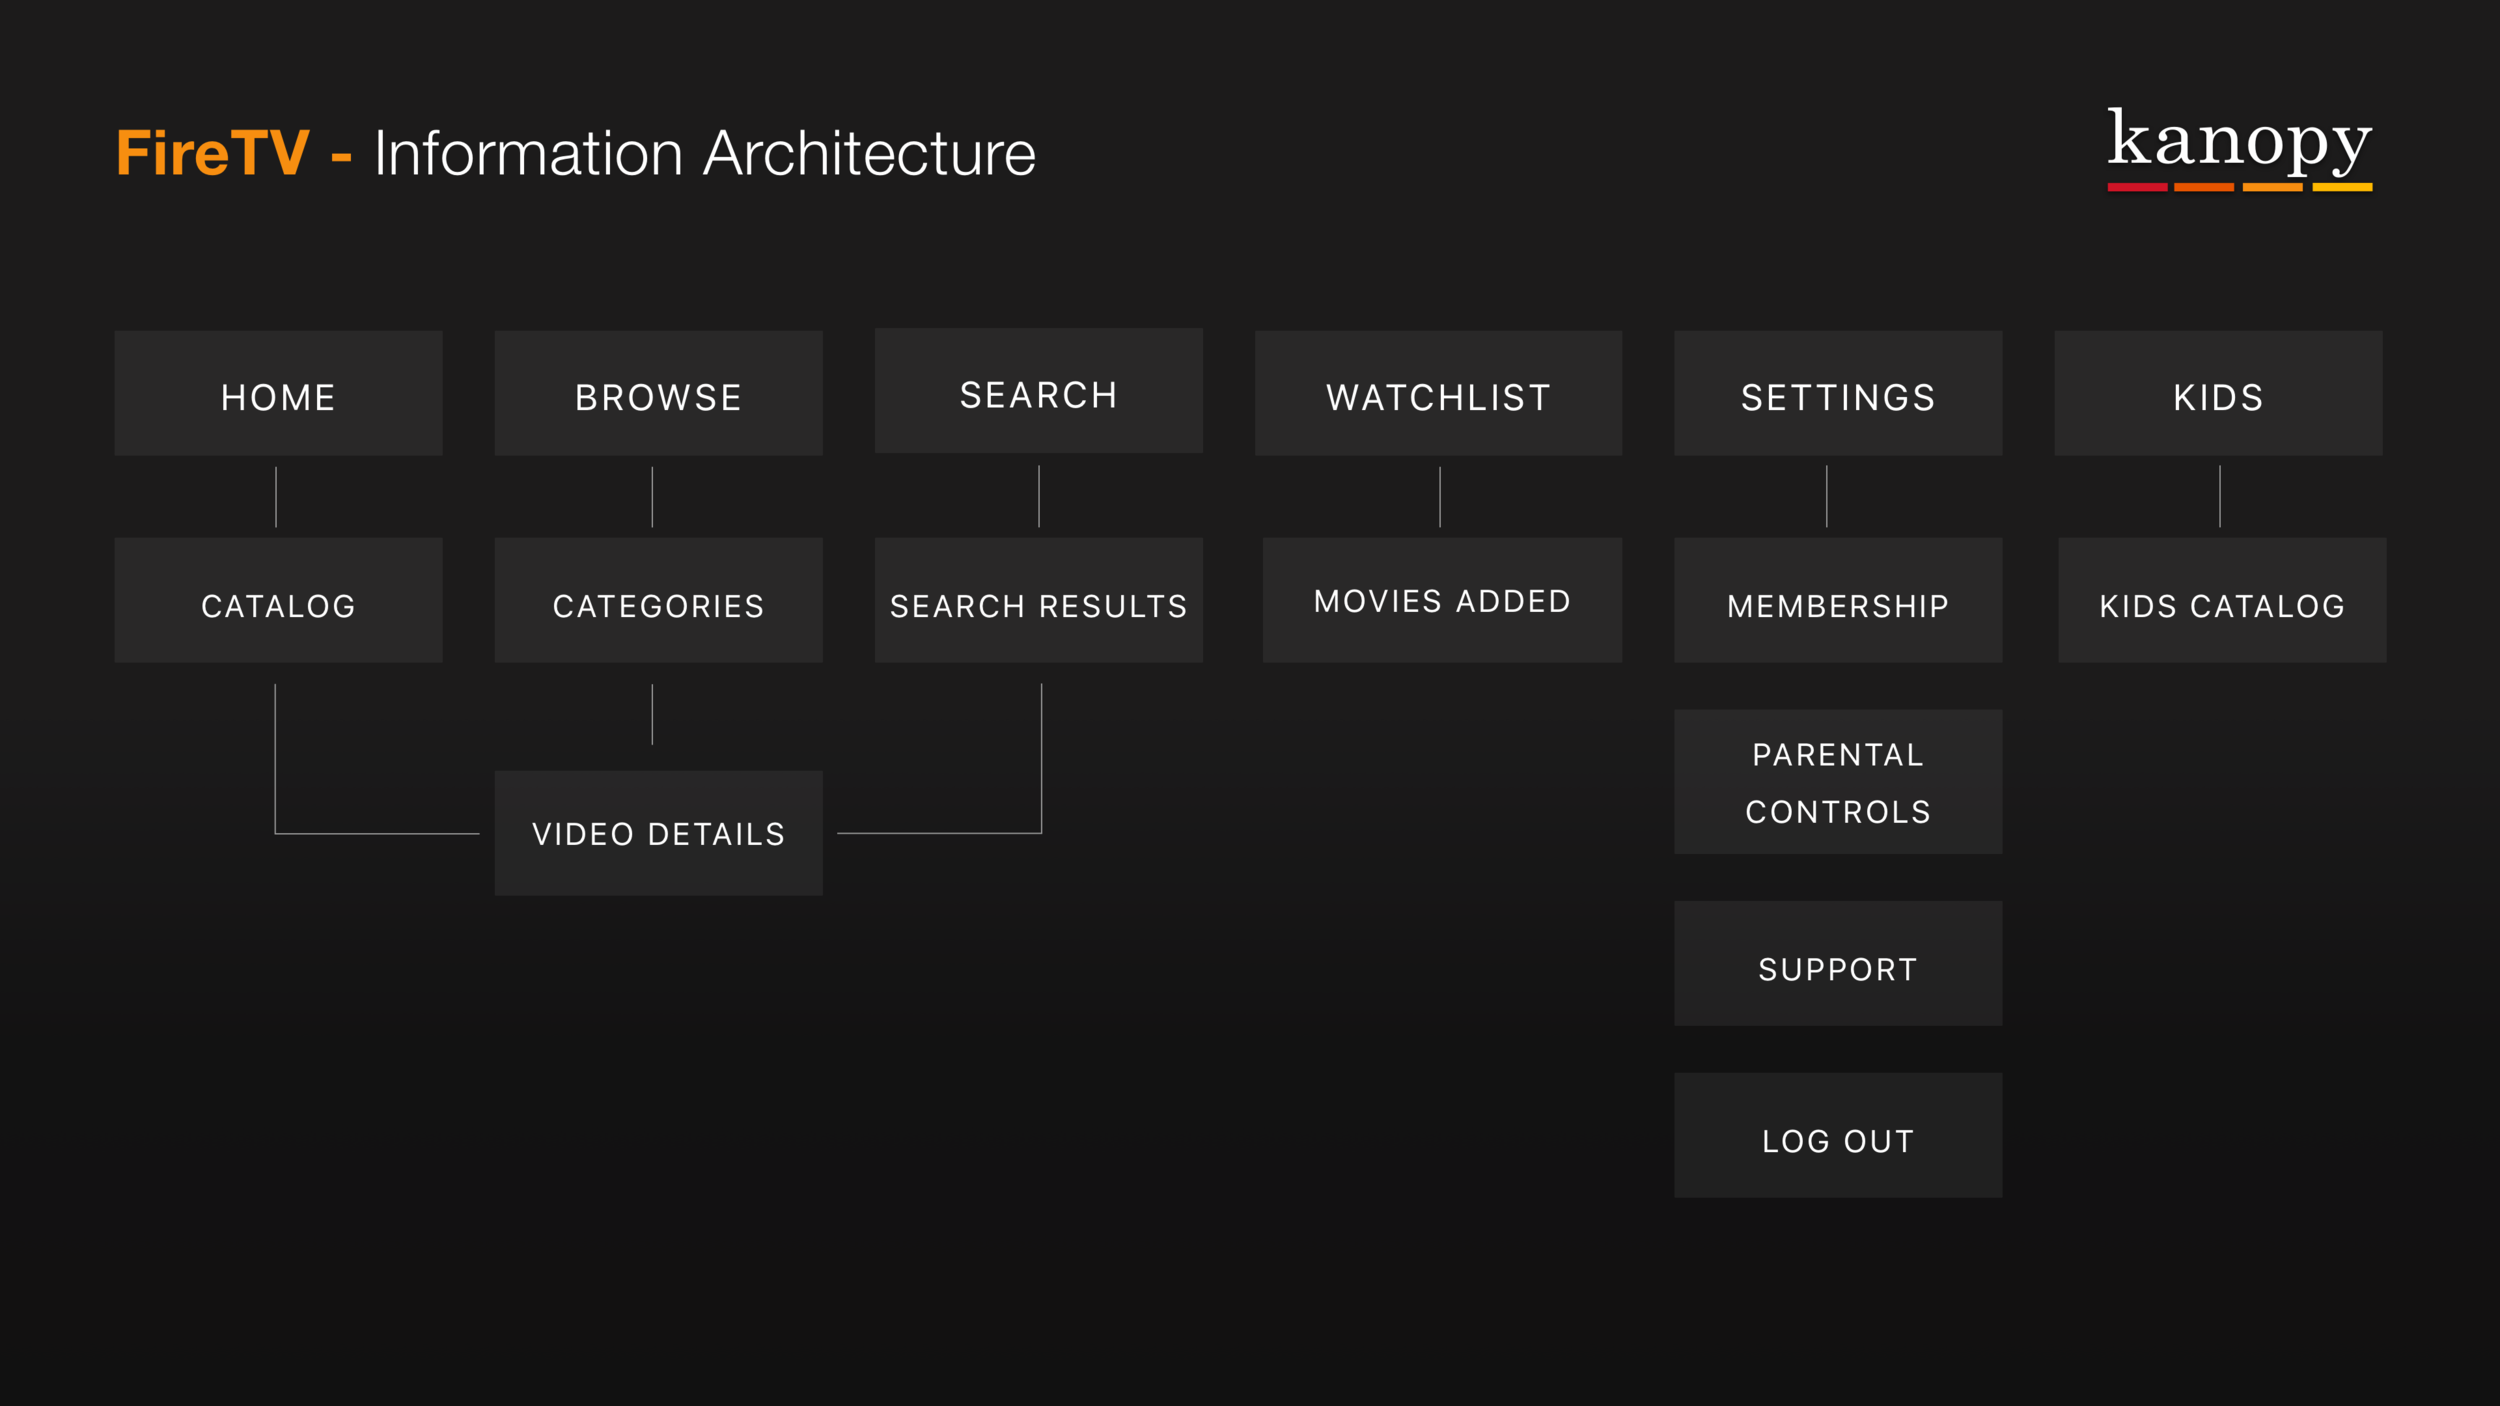 FireTv - User Goals & Informational Architecture Copy 4.png